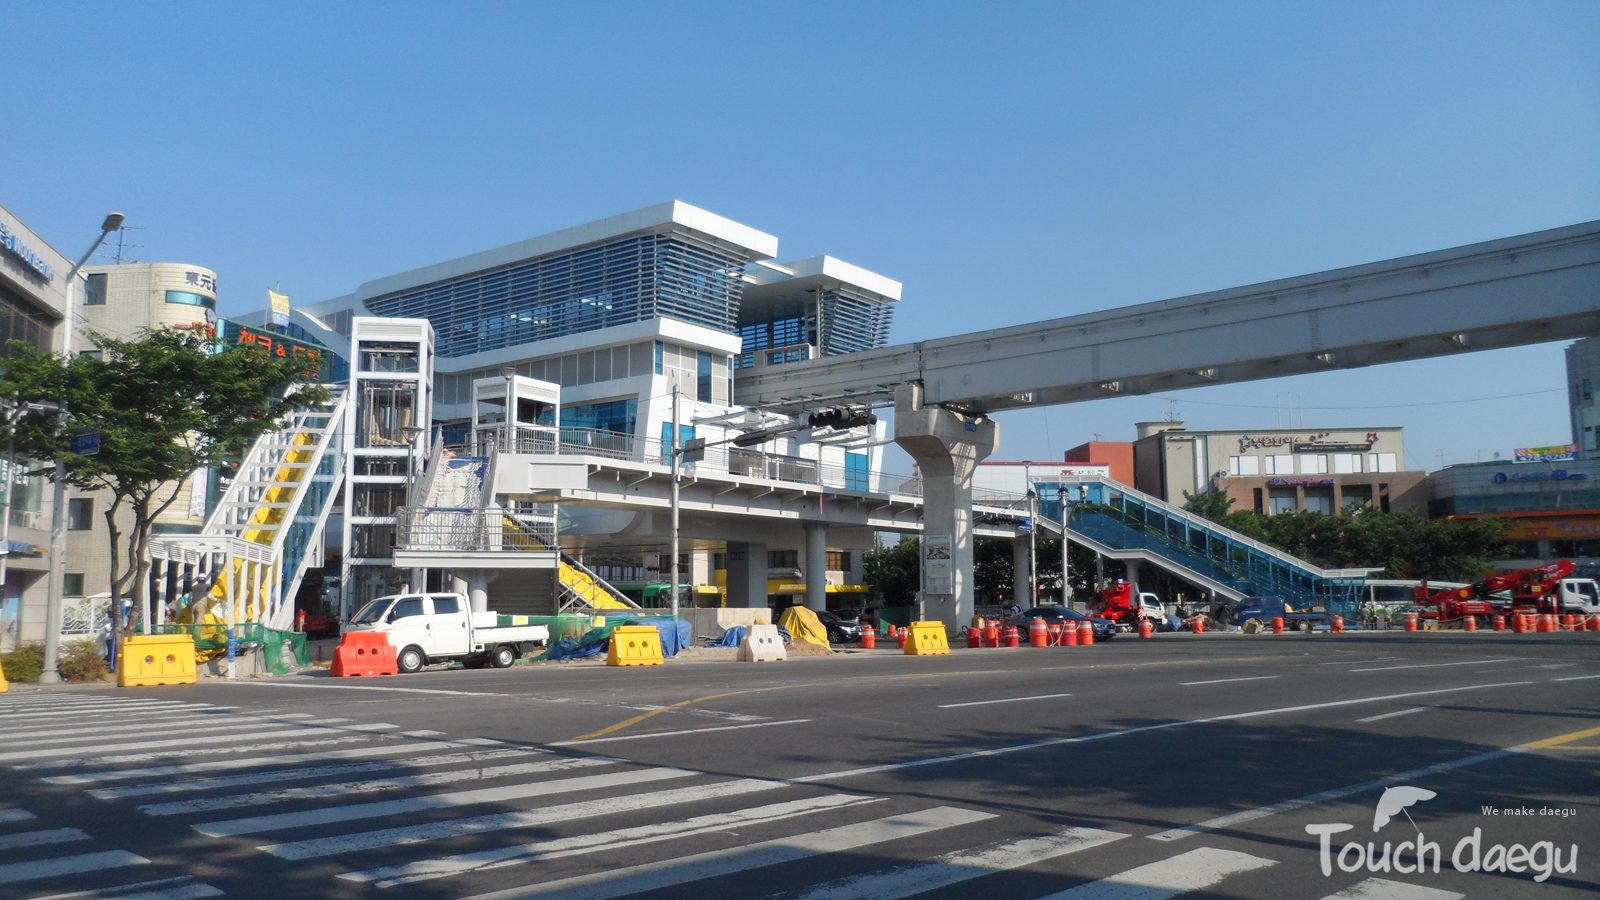 The transfer station of line 3, Myeongdeok station